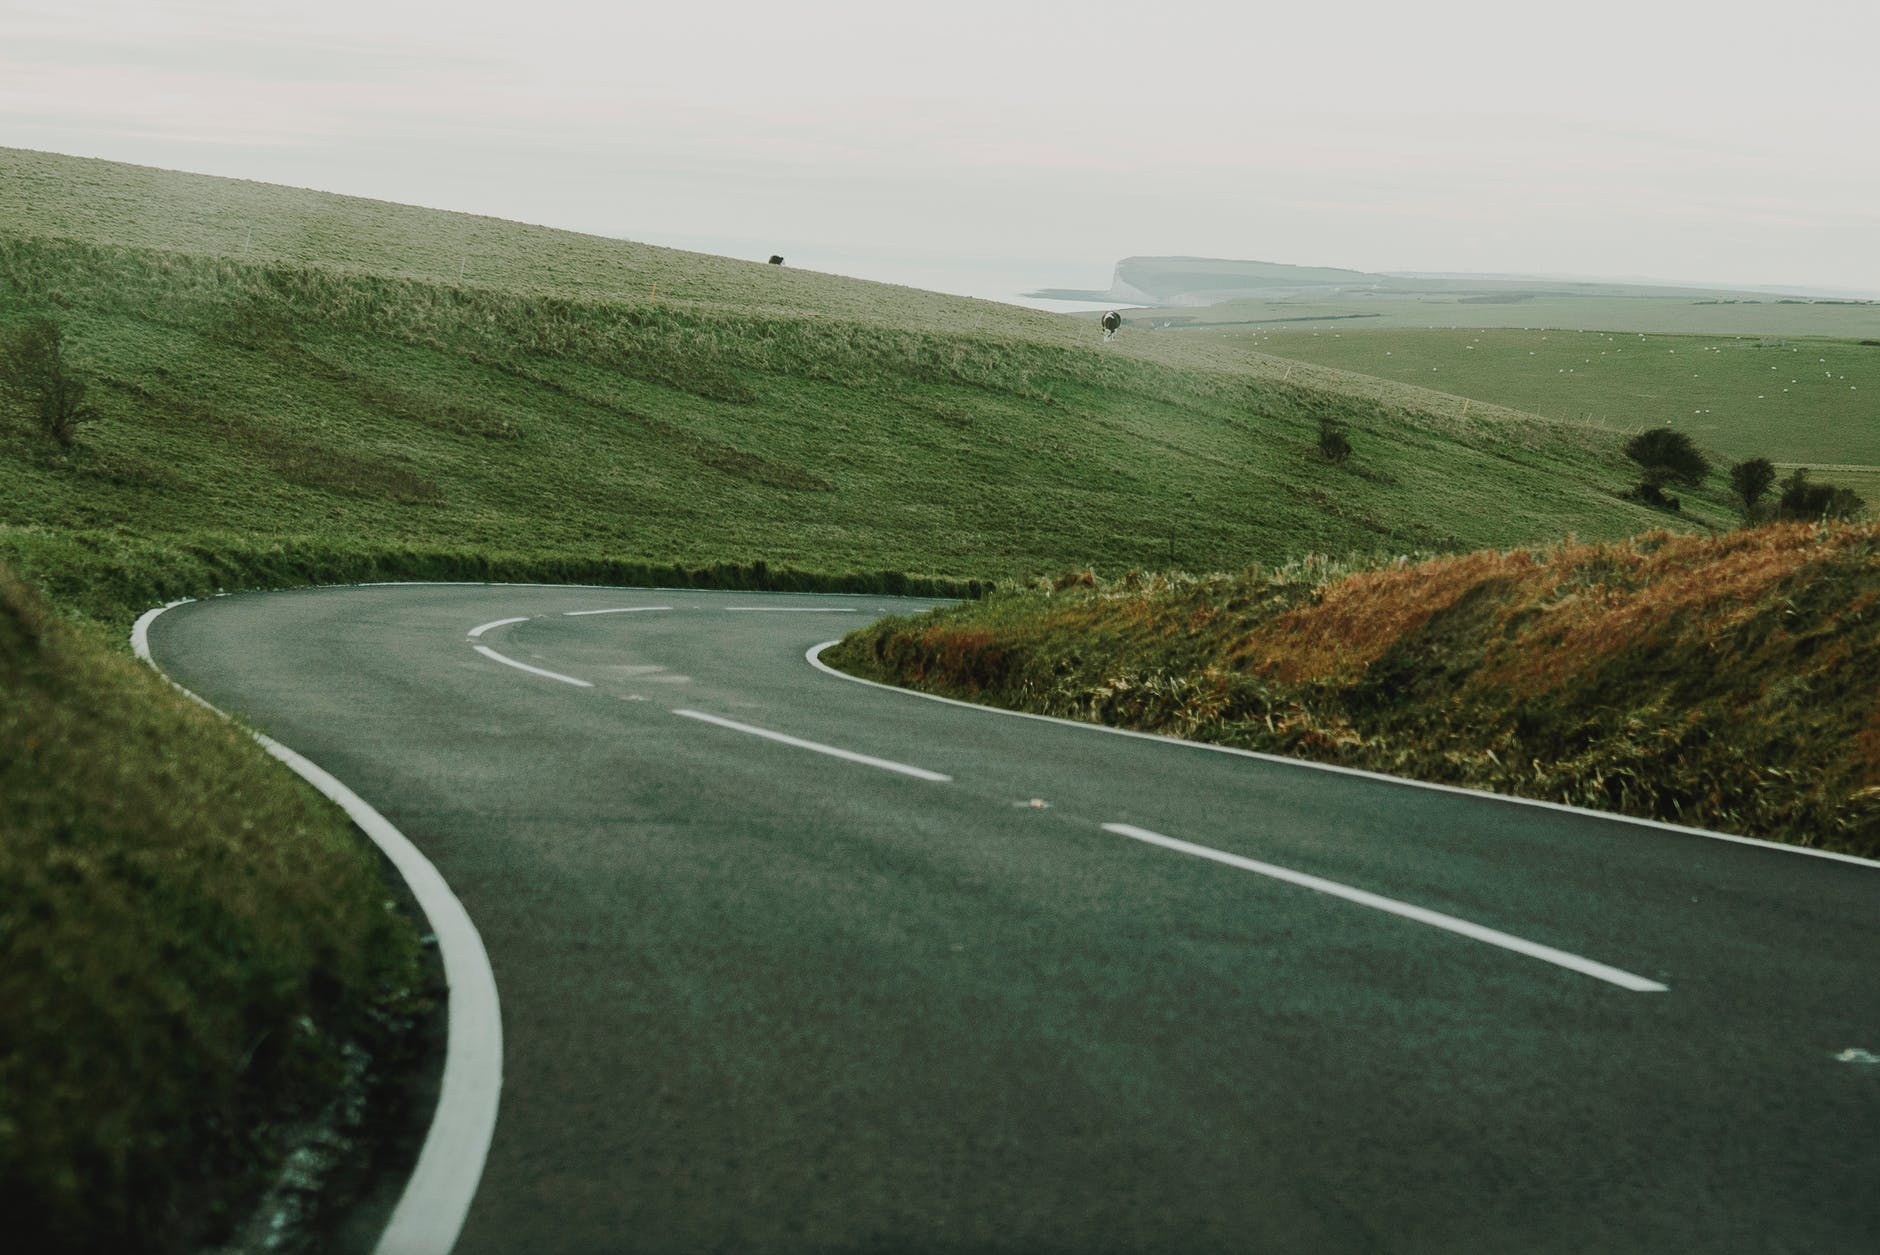 photo of an empty road